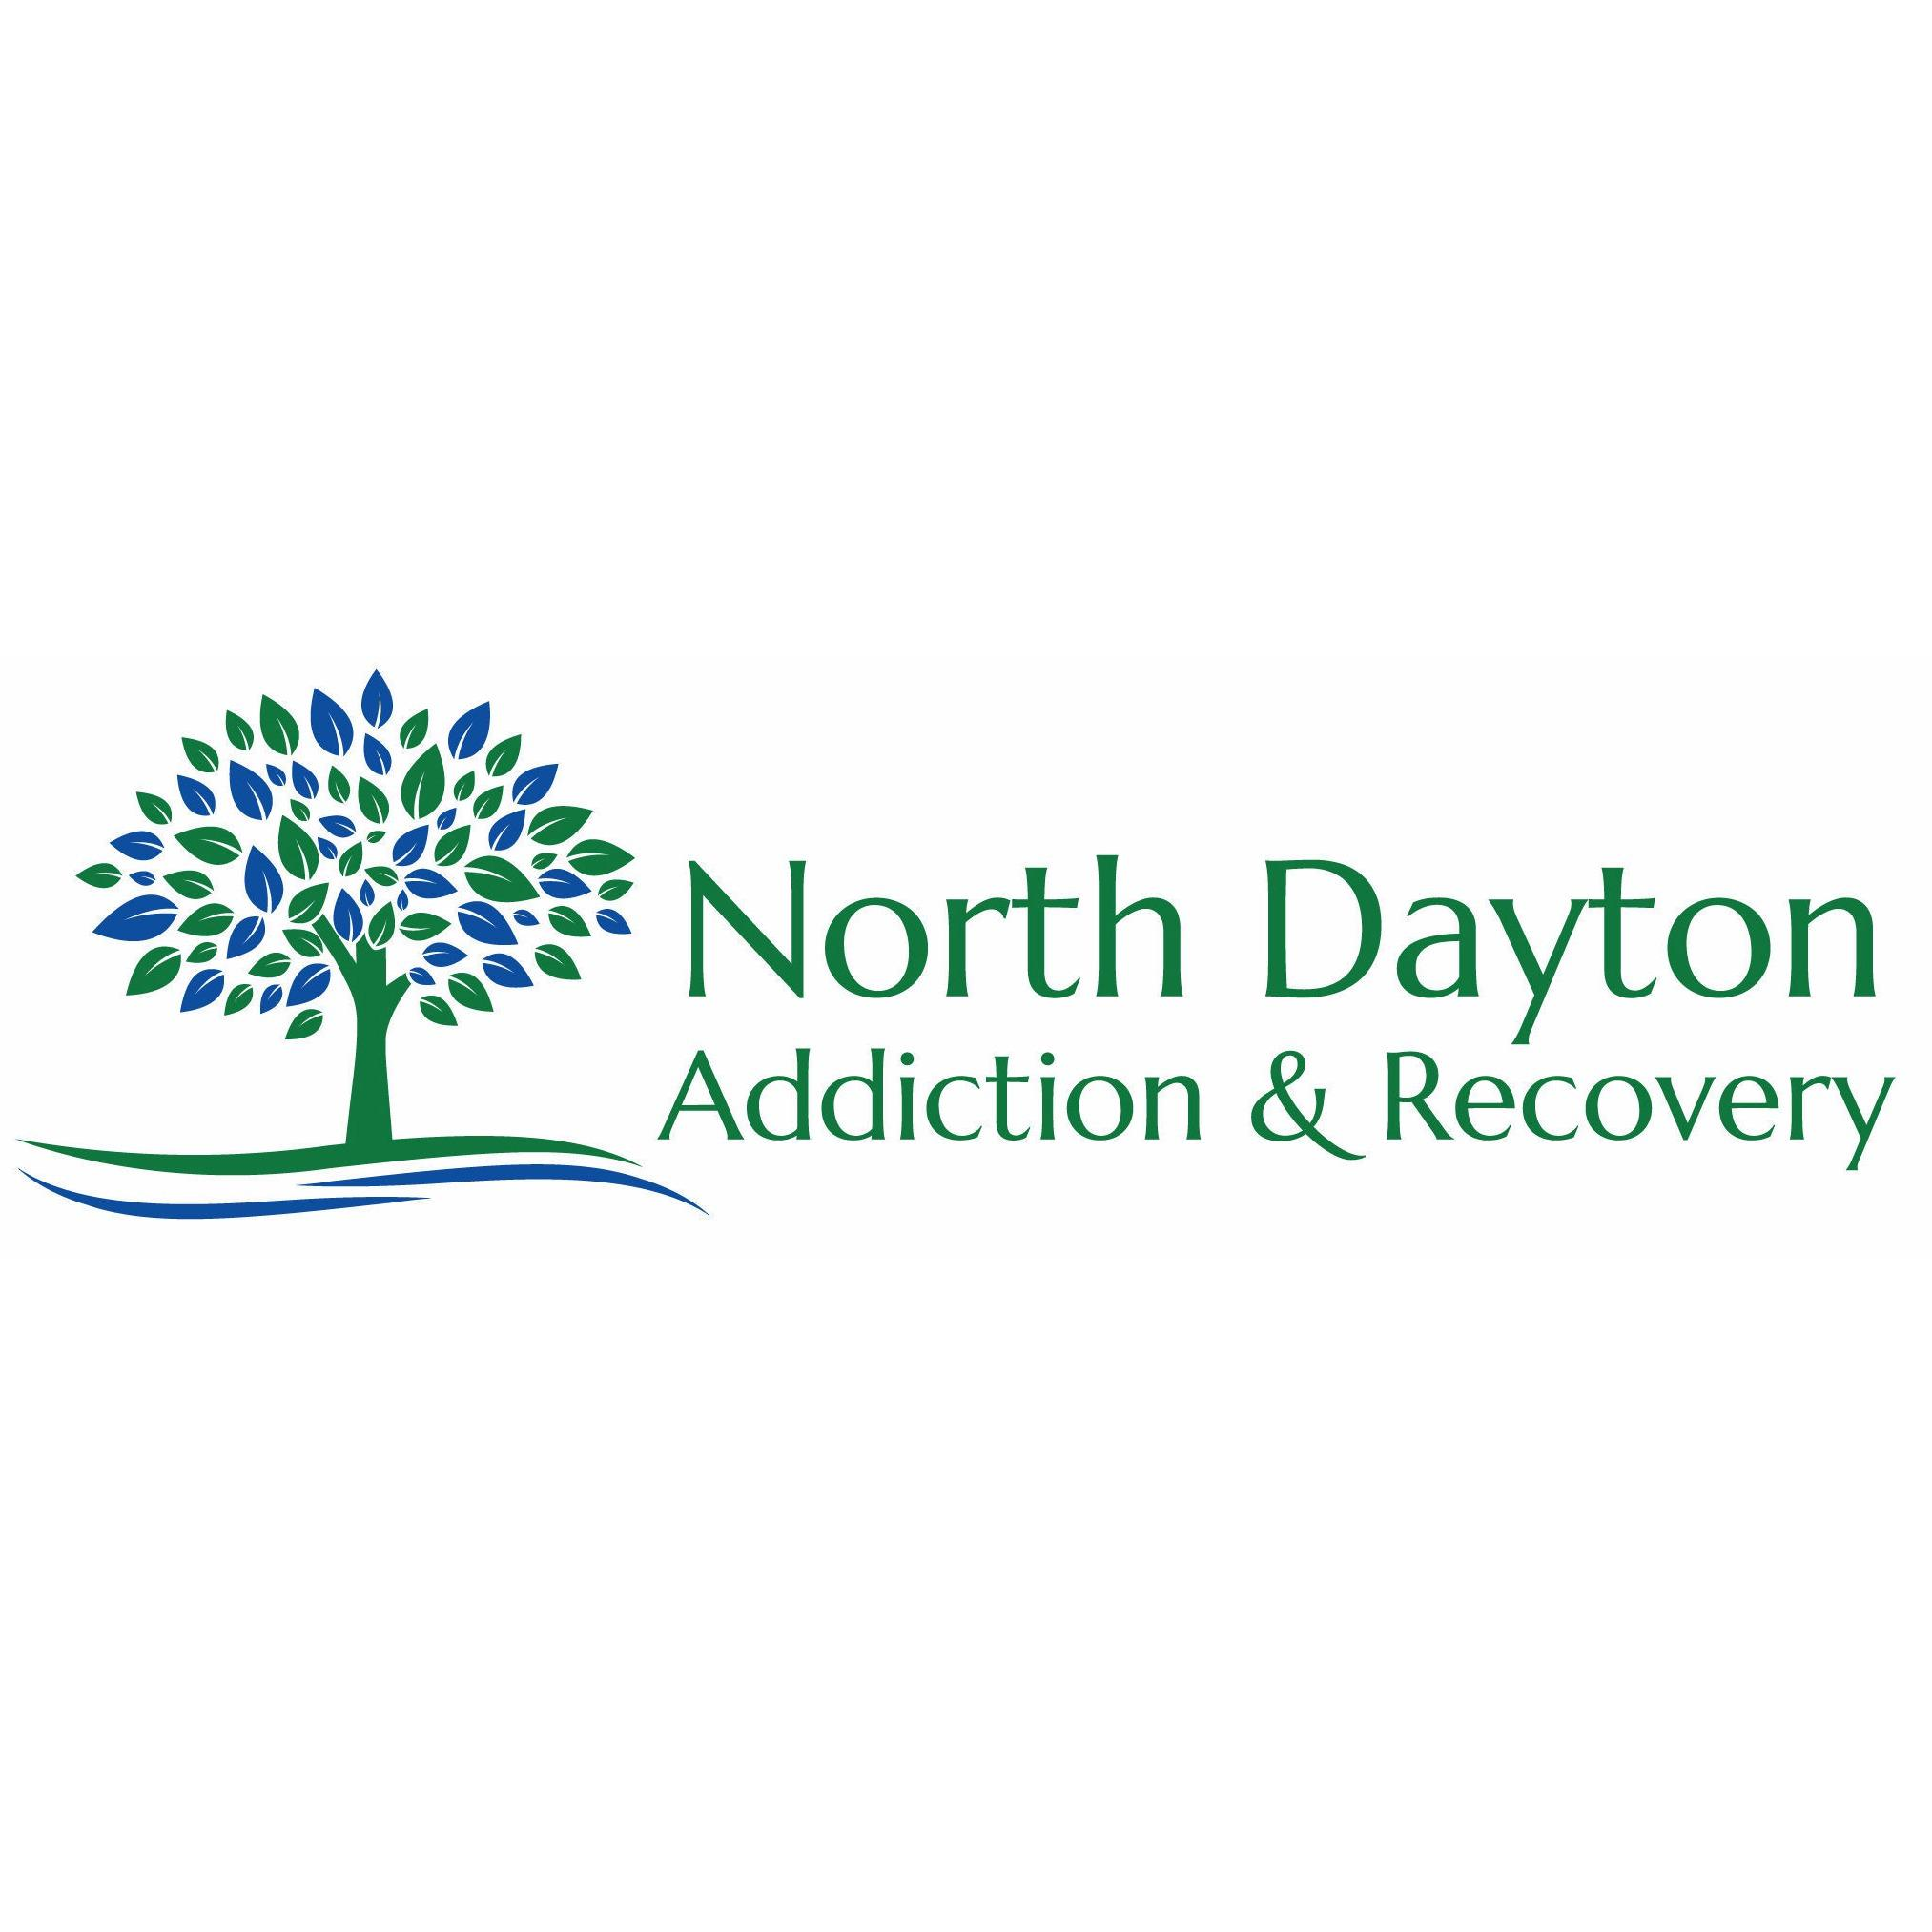 North Dayton Addiction & Recovery